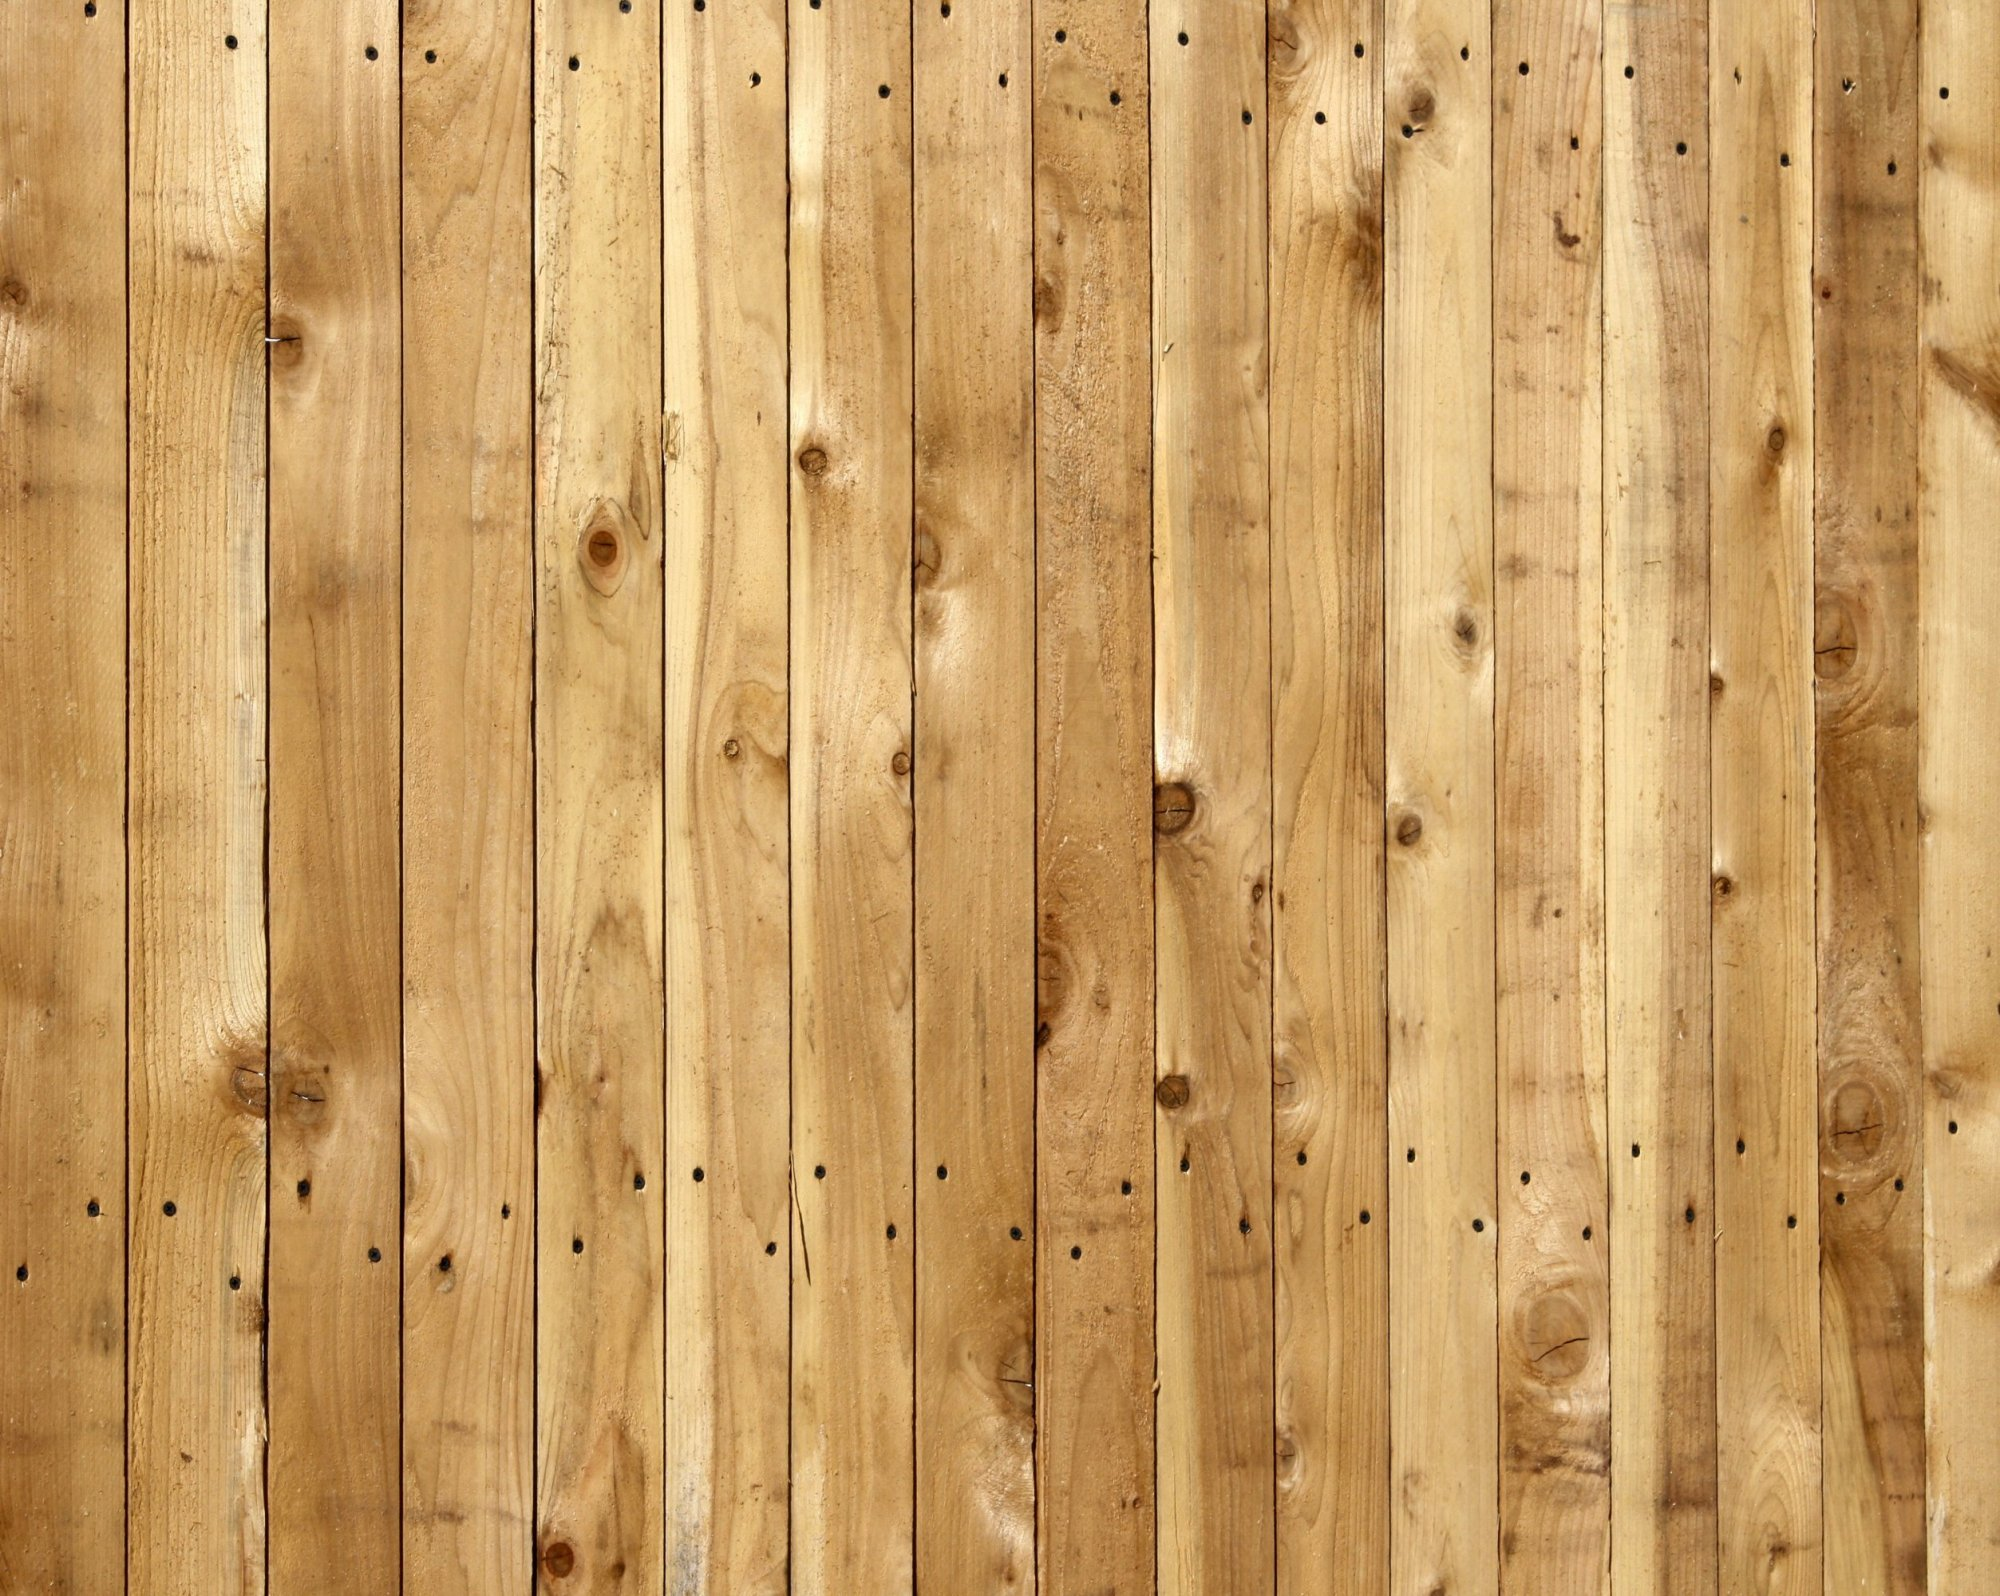 hight resolution of wood textures clipart wooden boards texture